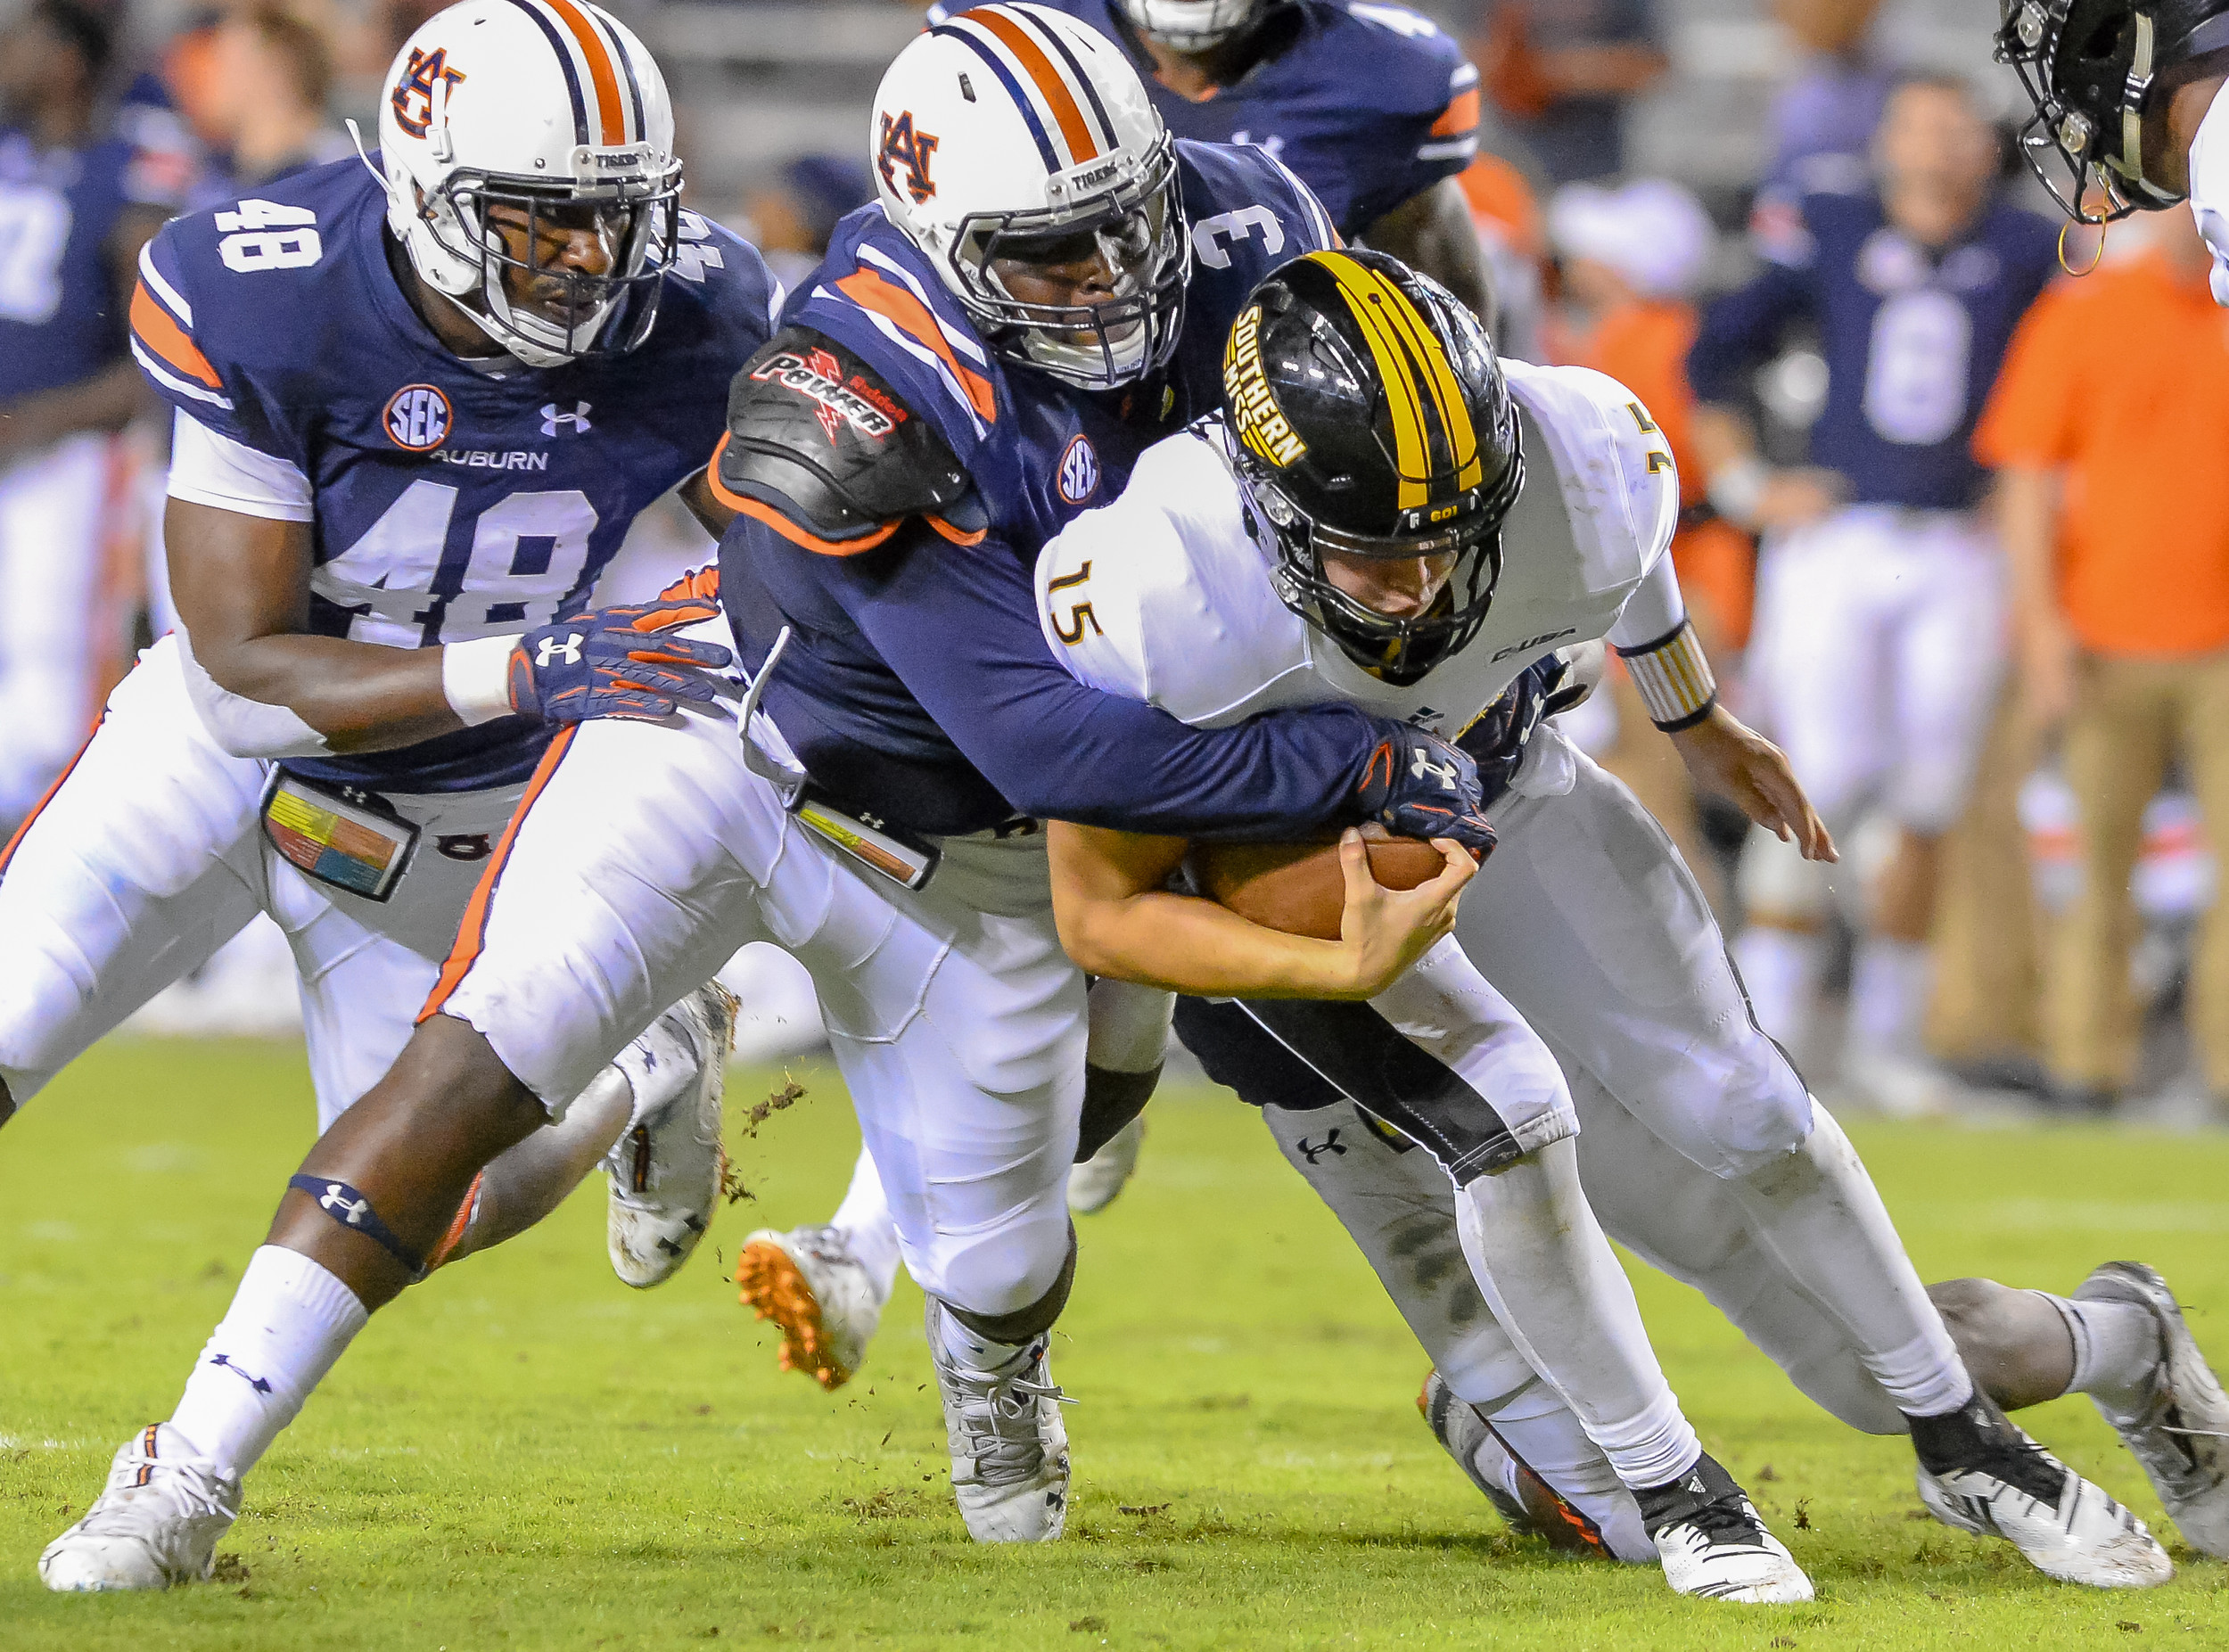 Auburn Tigers defensive lineman Marlon Davidson (3) brings down Southern Miss Golden Eagles quarterback Jack Abraham (15) during the second half of Saturday's game, at Jordan Hare Stadium in Auburn AL. Daily Mountain Eagle -  Jeff Johnsey